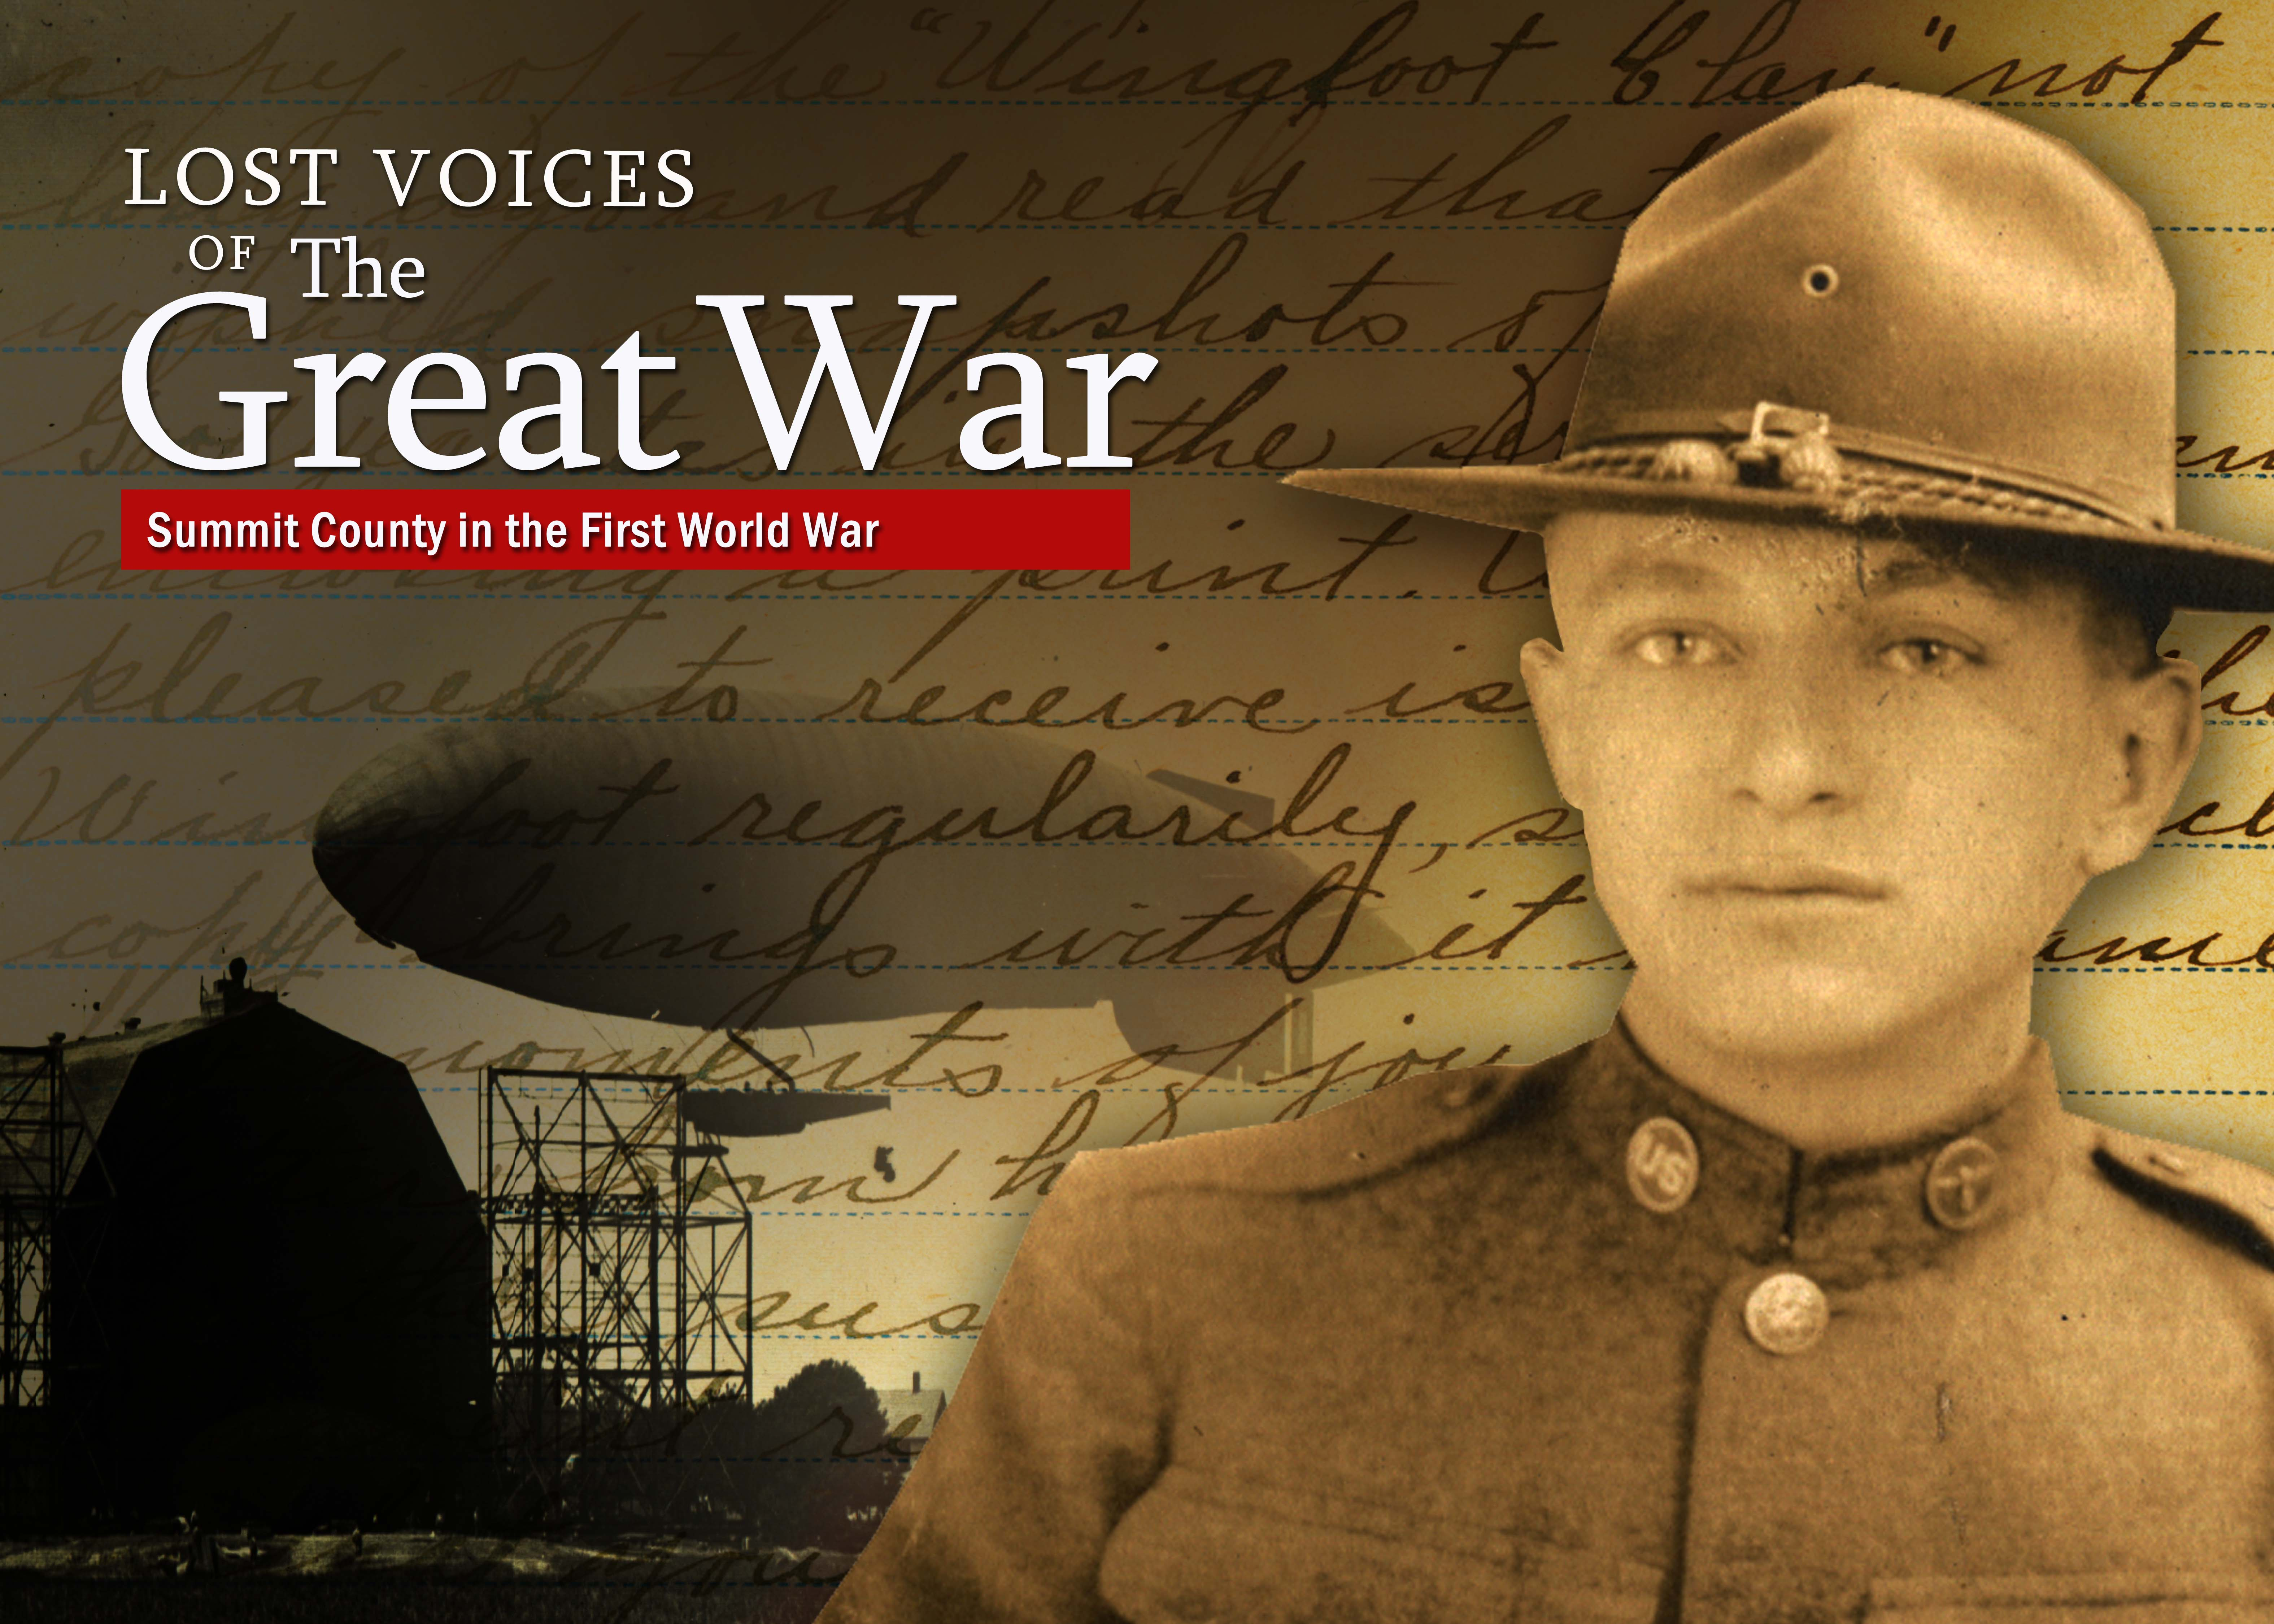 Ohio in WW1 - Articles - World War I Centennial